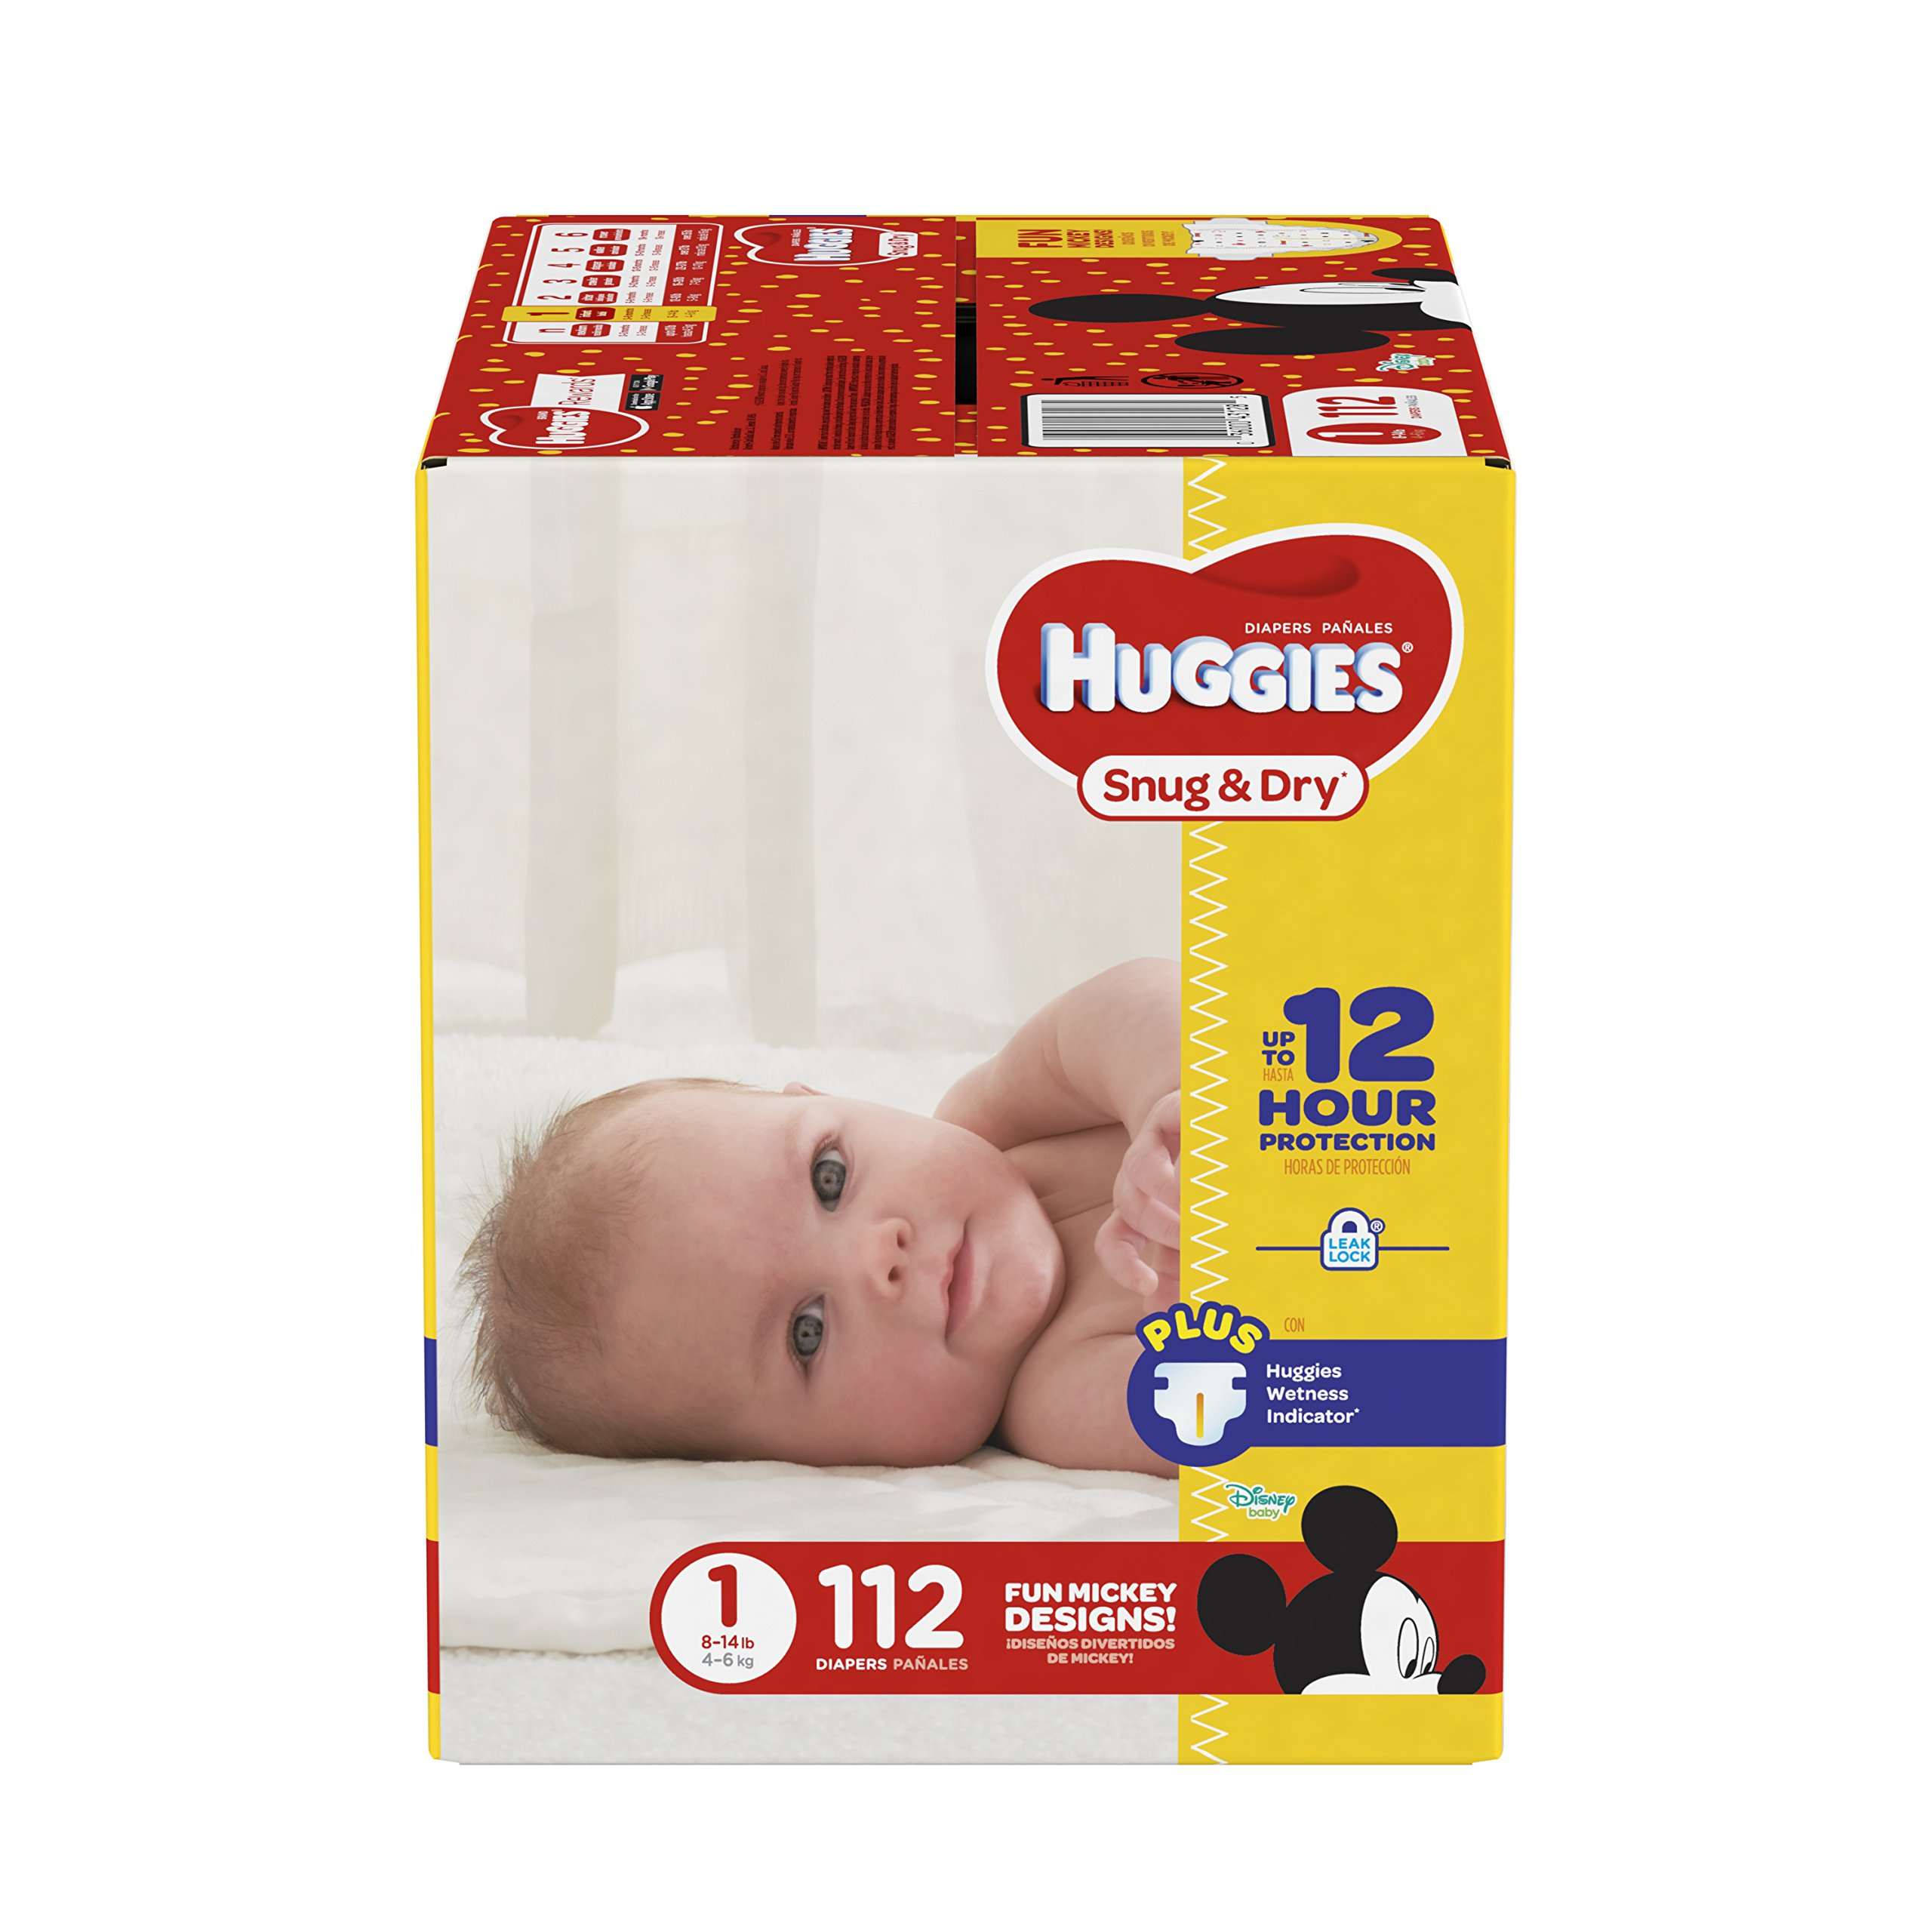 HUGGIES Snug & Dry Diapers, Size 1, 112 Count, BIG PACK (Packaging